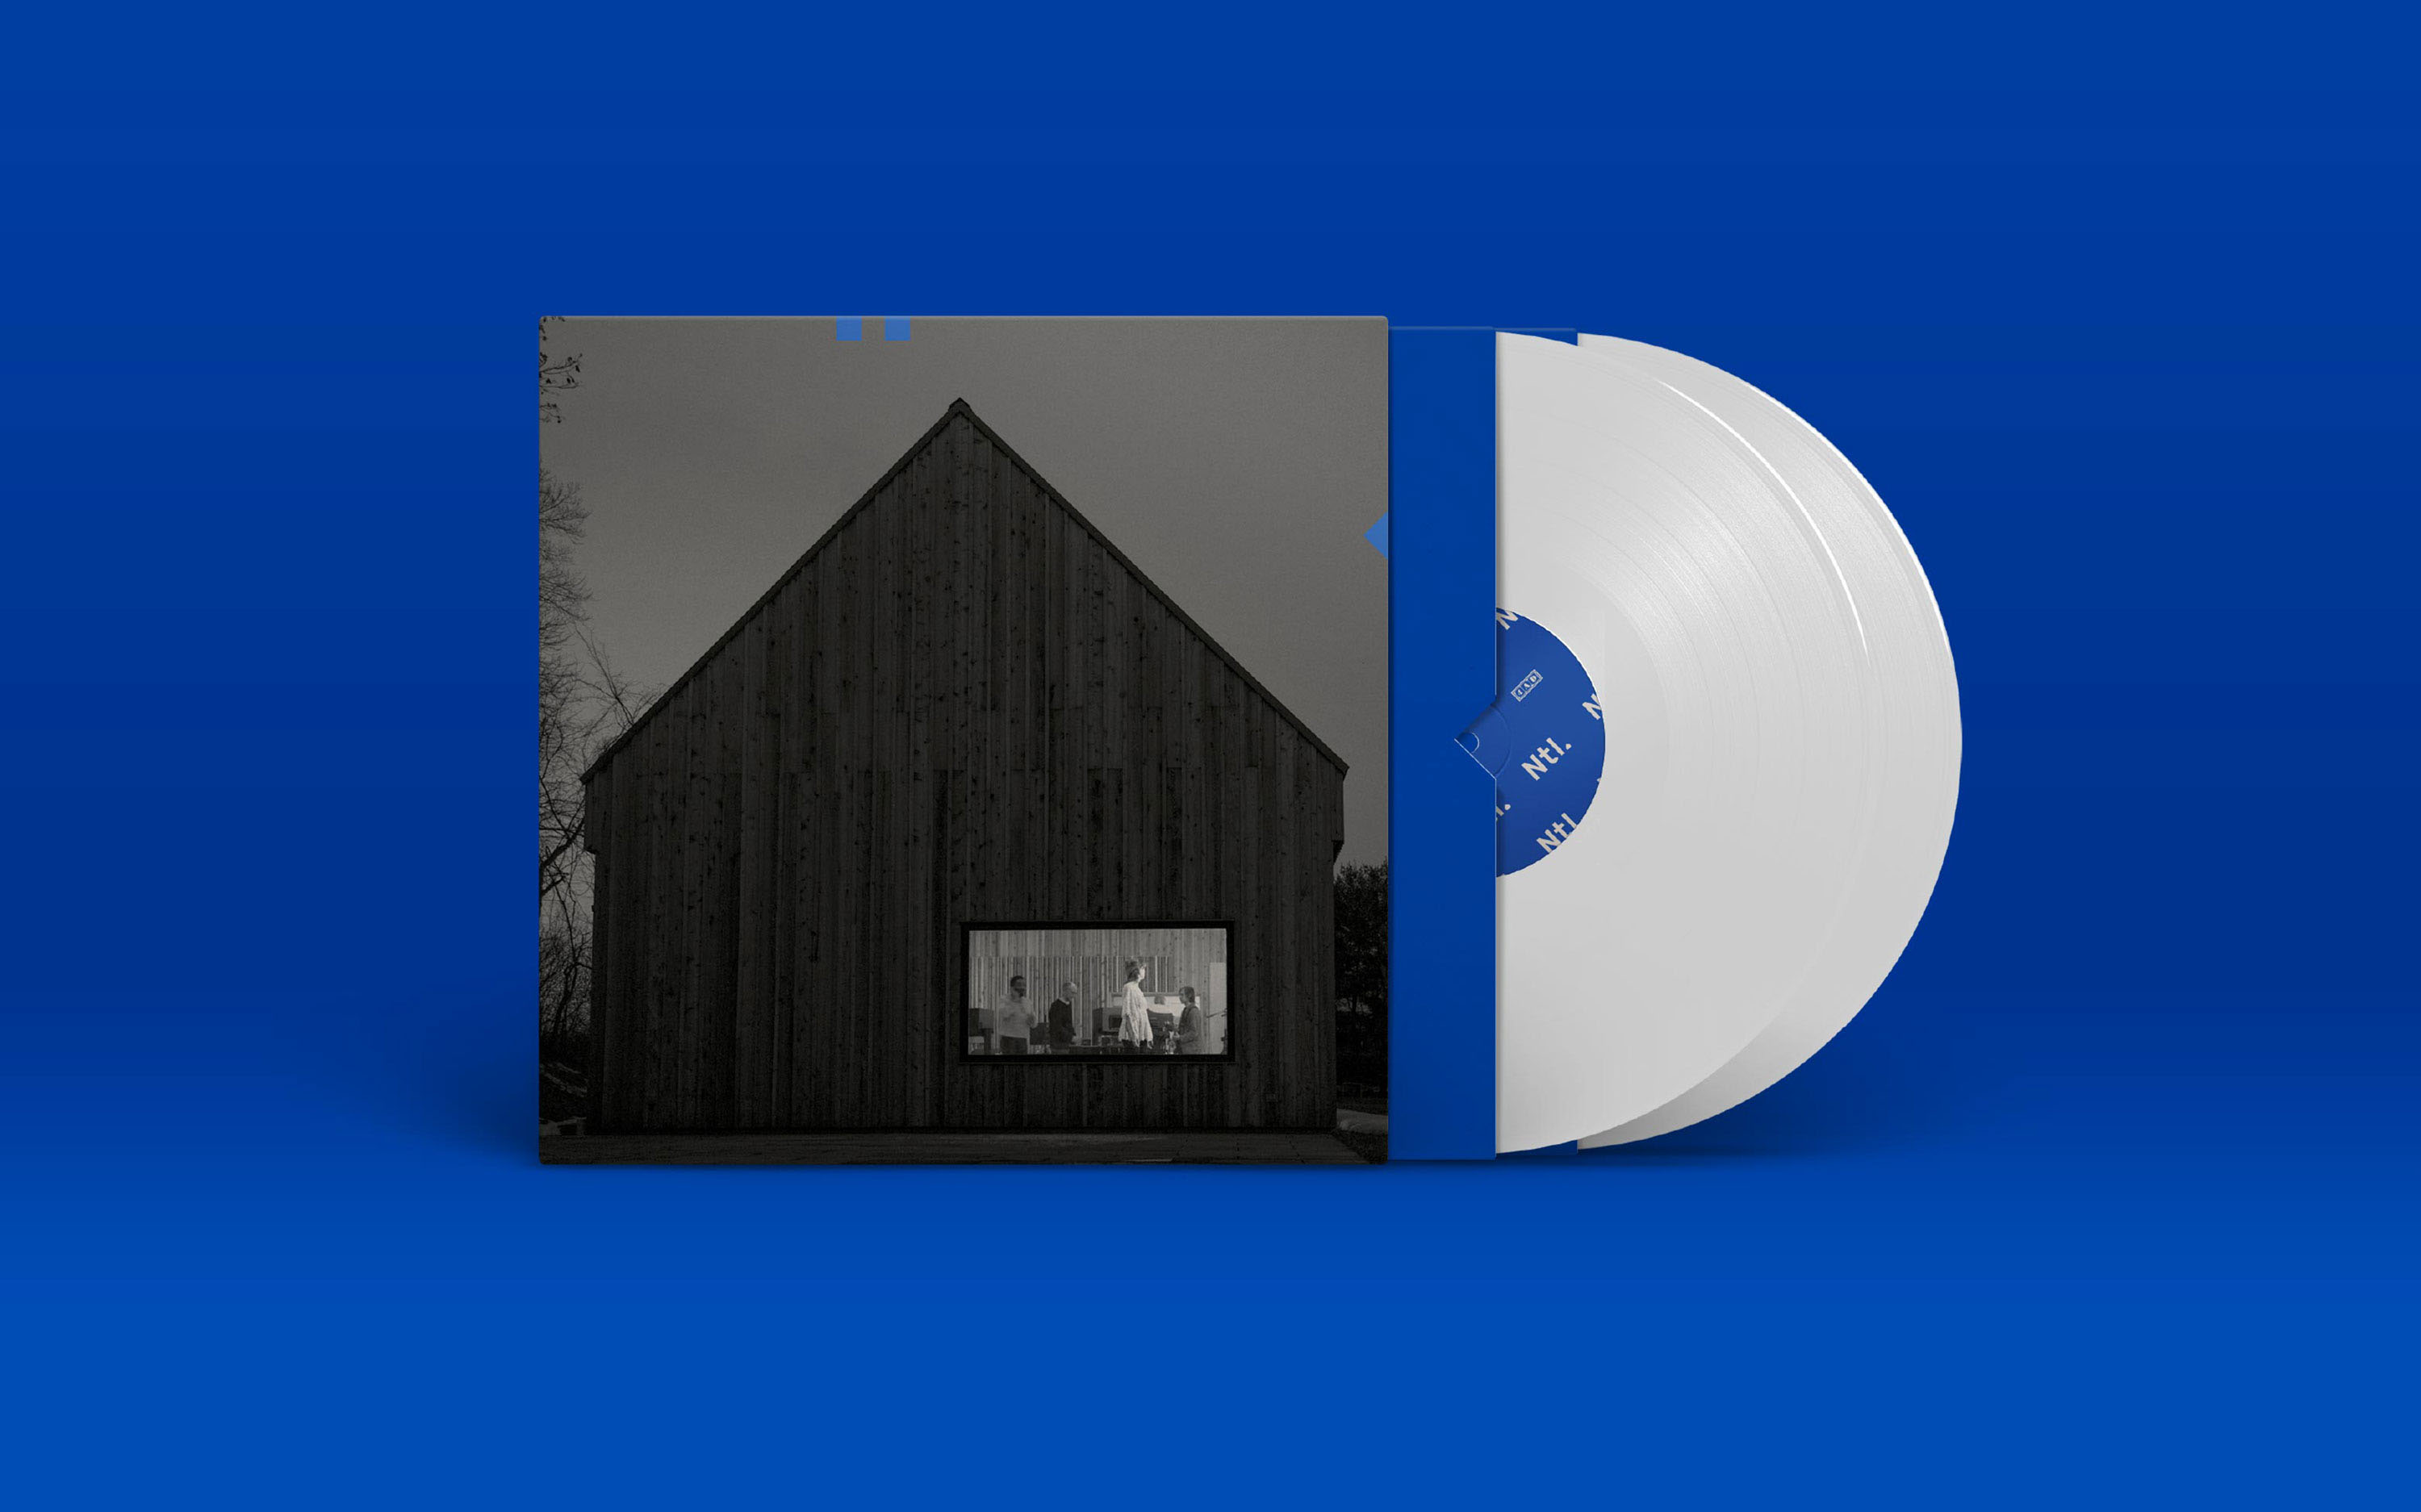 The National CD case on blue background